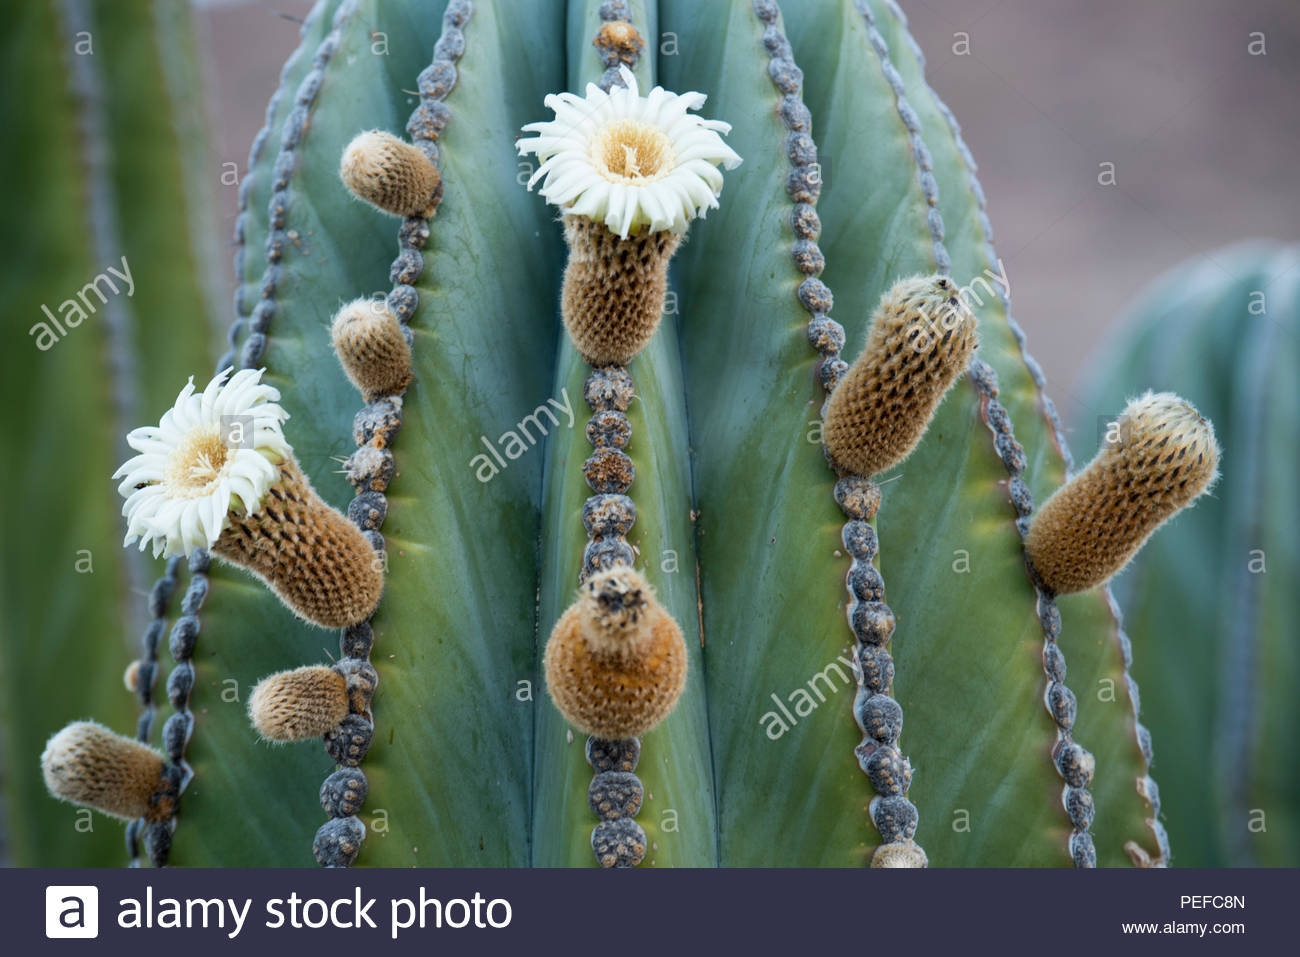 A cactus in bloom. Stock Photo